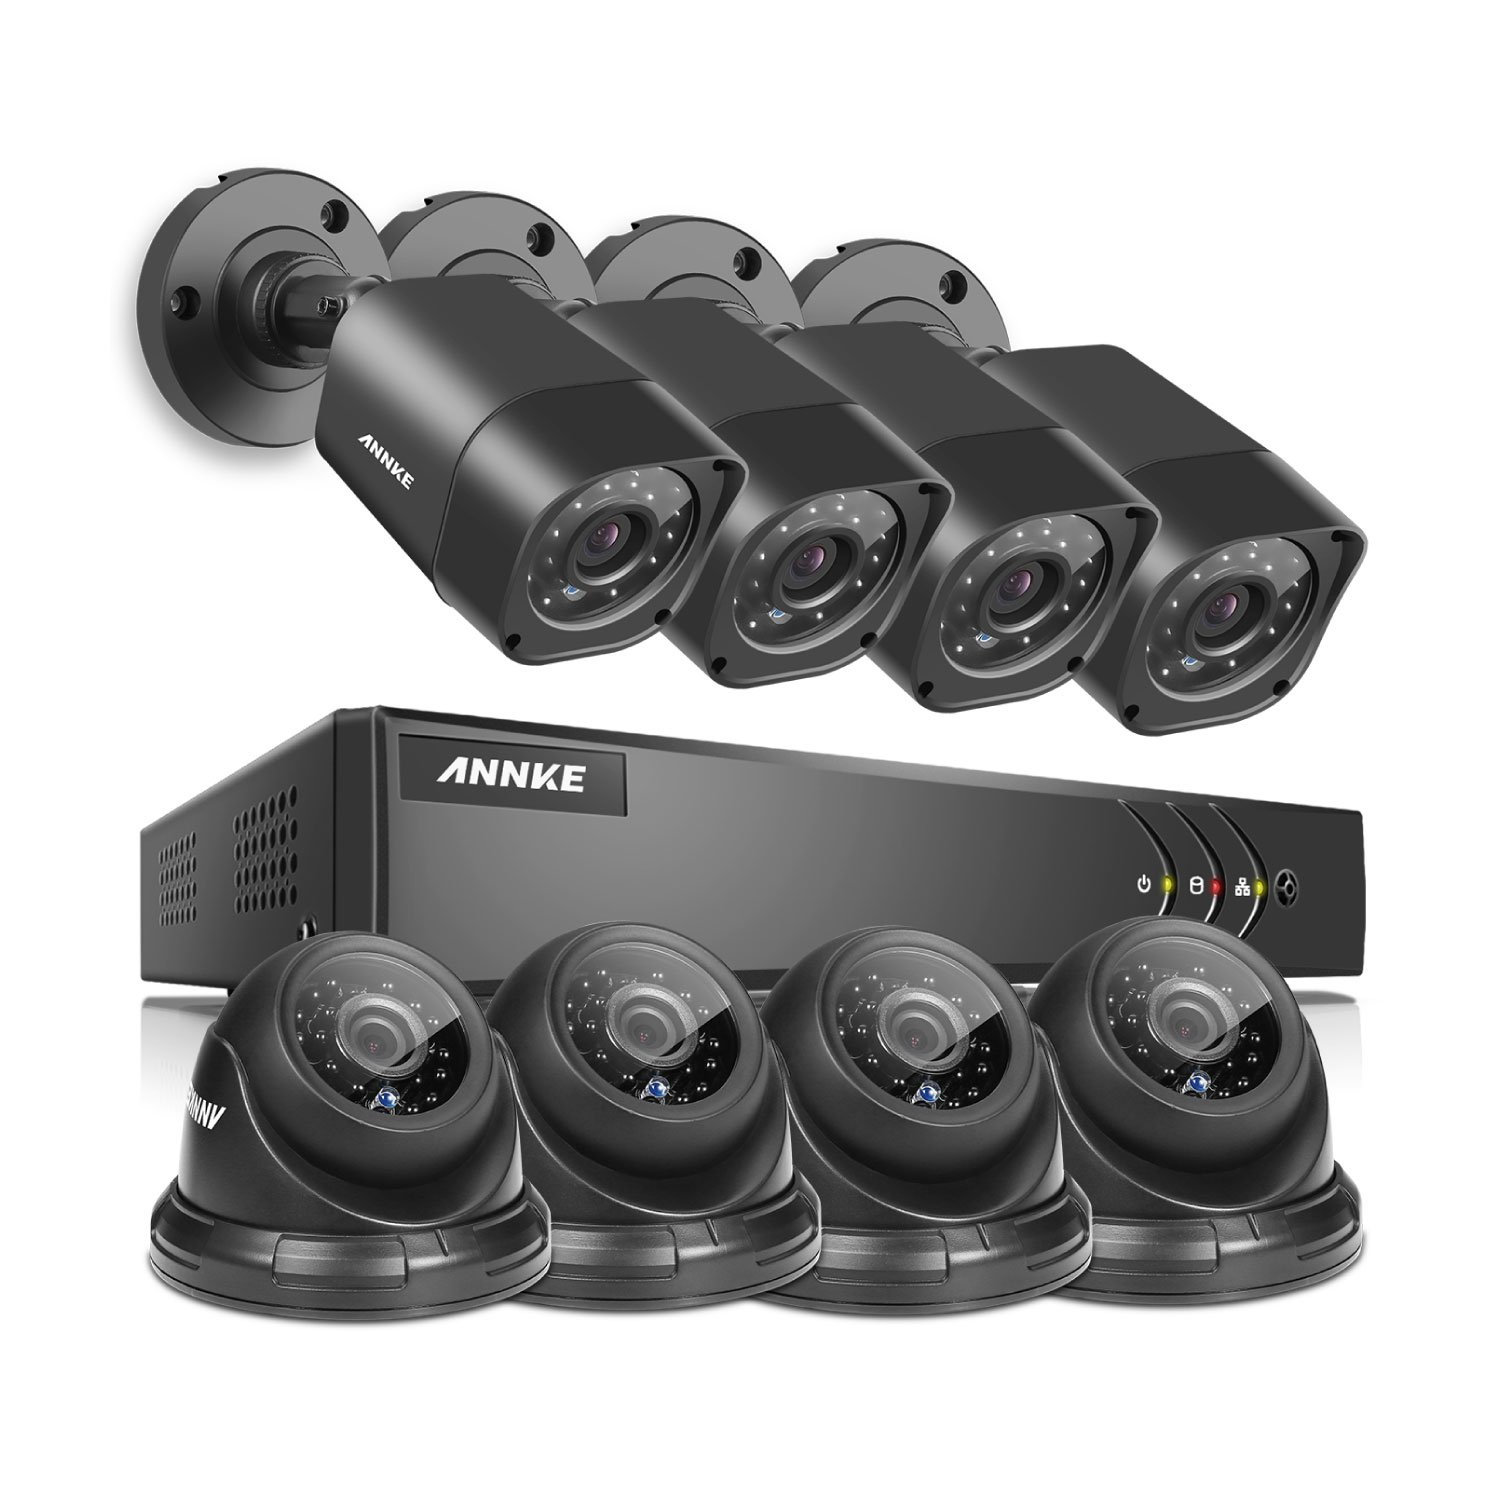 ANNKE 8-Channel HD 1080N Home Security System DVR and (8) 720P Indoor/Outdoor Weatherproof Cameras with IR Night Vision LEDs, Remote Access - NO HDD by SANNCE (Image #1)